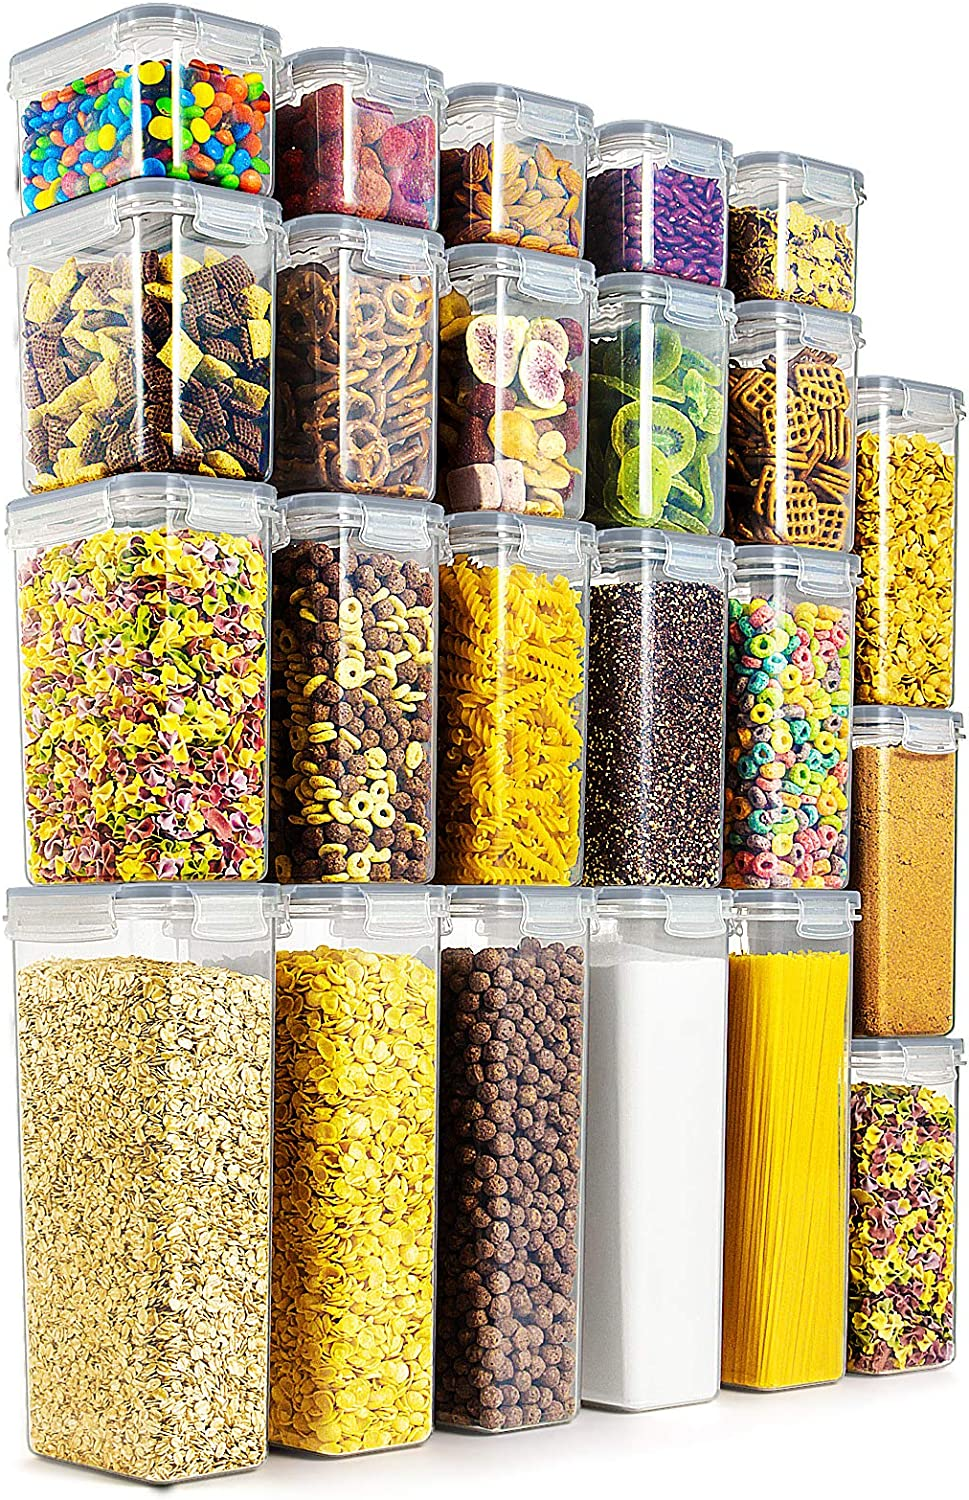 Wildone Airtight Food Storage Containers - BPA Free Cereal & Dry Food Storage Containers Set of 23 for Sugar, Flour, Snack, Baking Supplies, Grey Lids with 20 Chalkboard Labels & 1 Marker